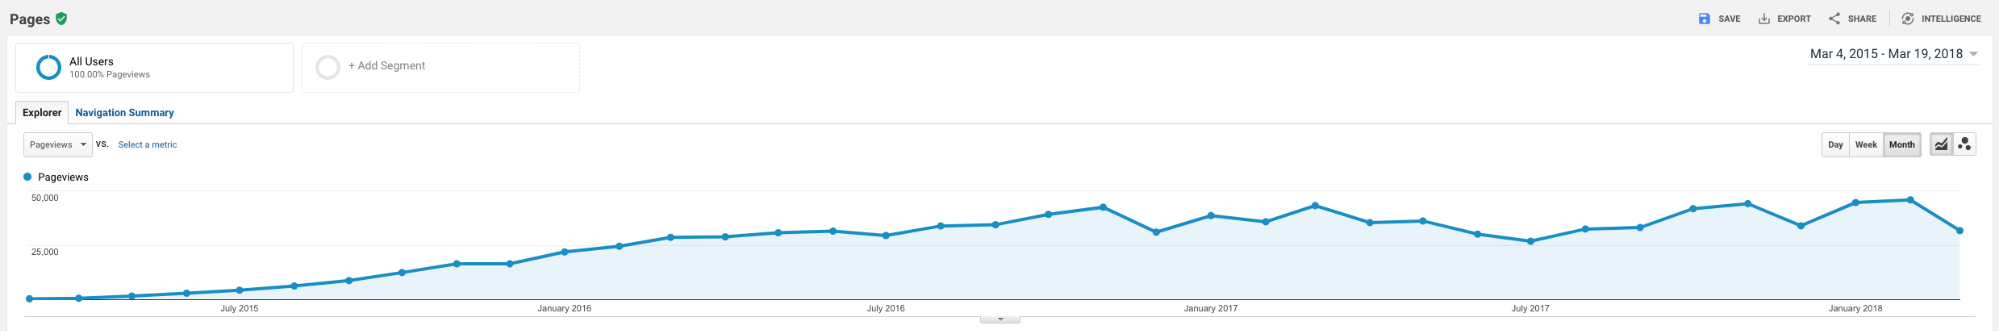 The page views over time for one of our clients